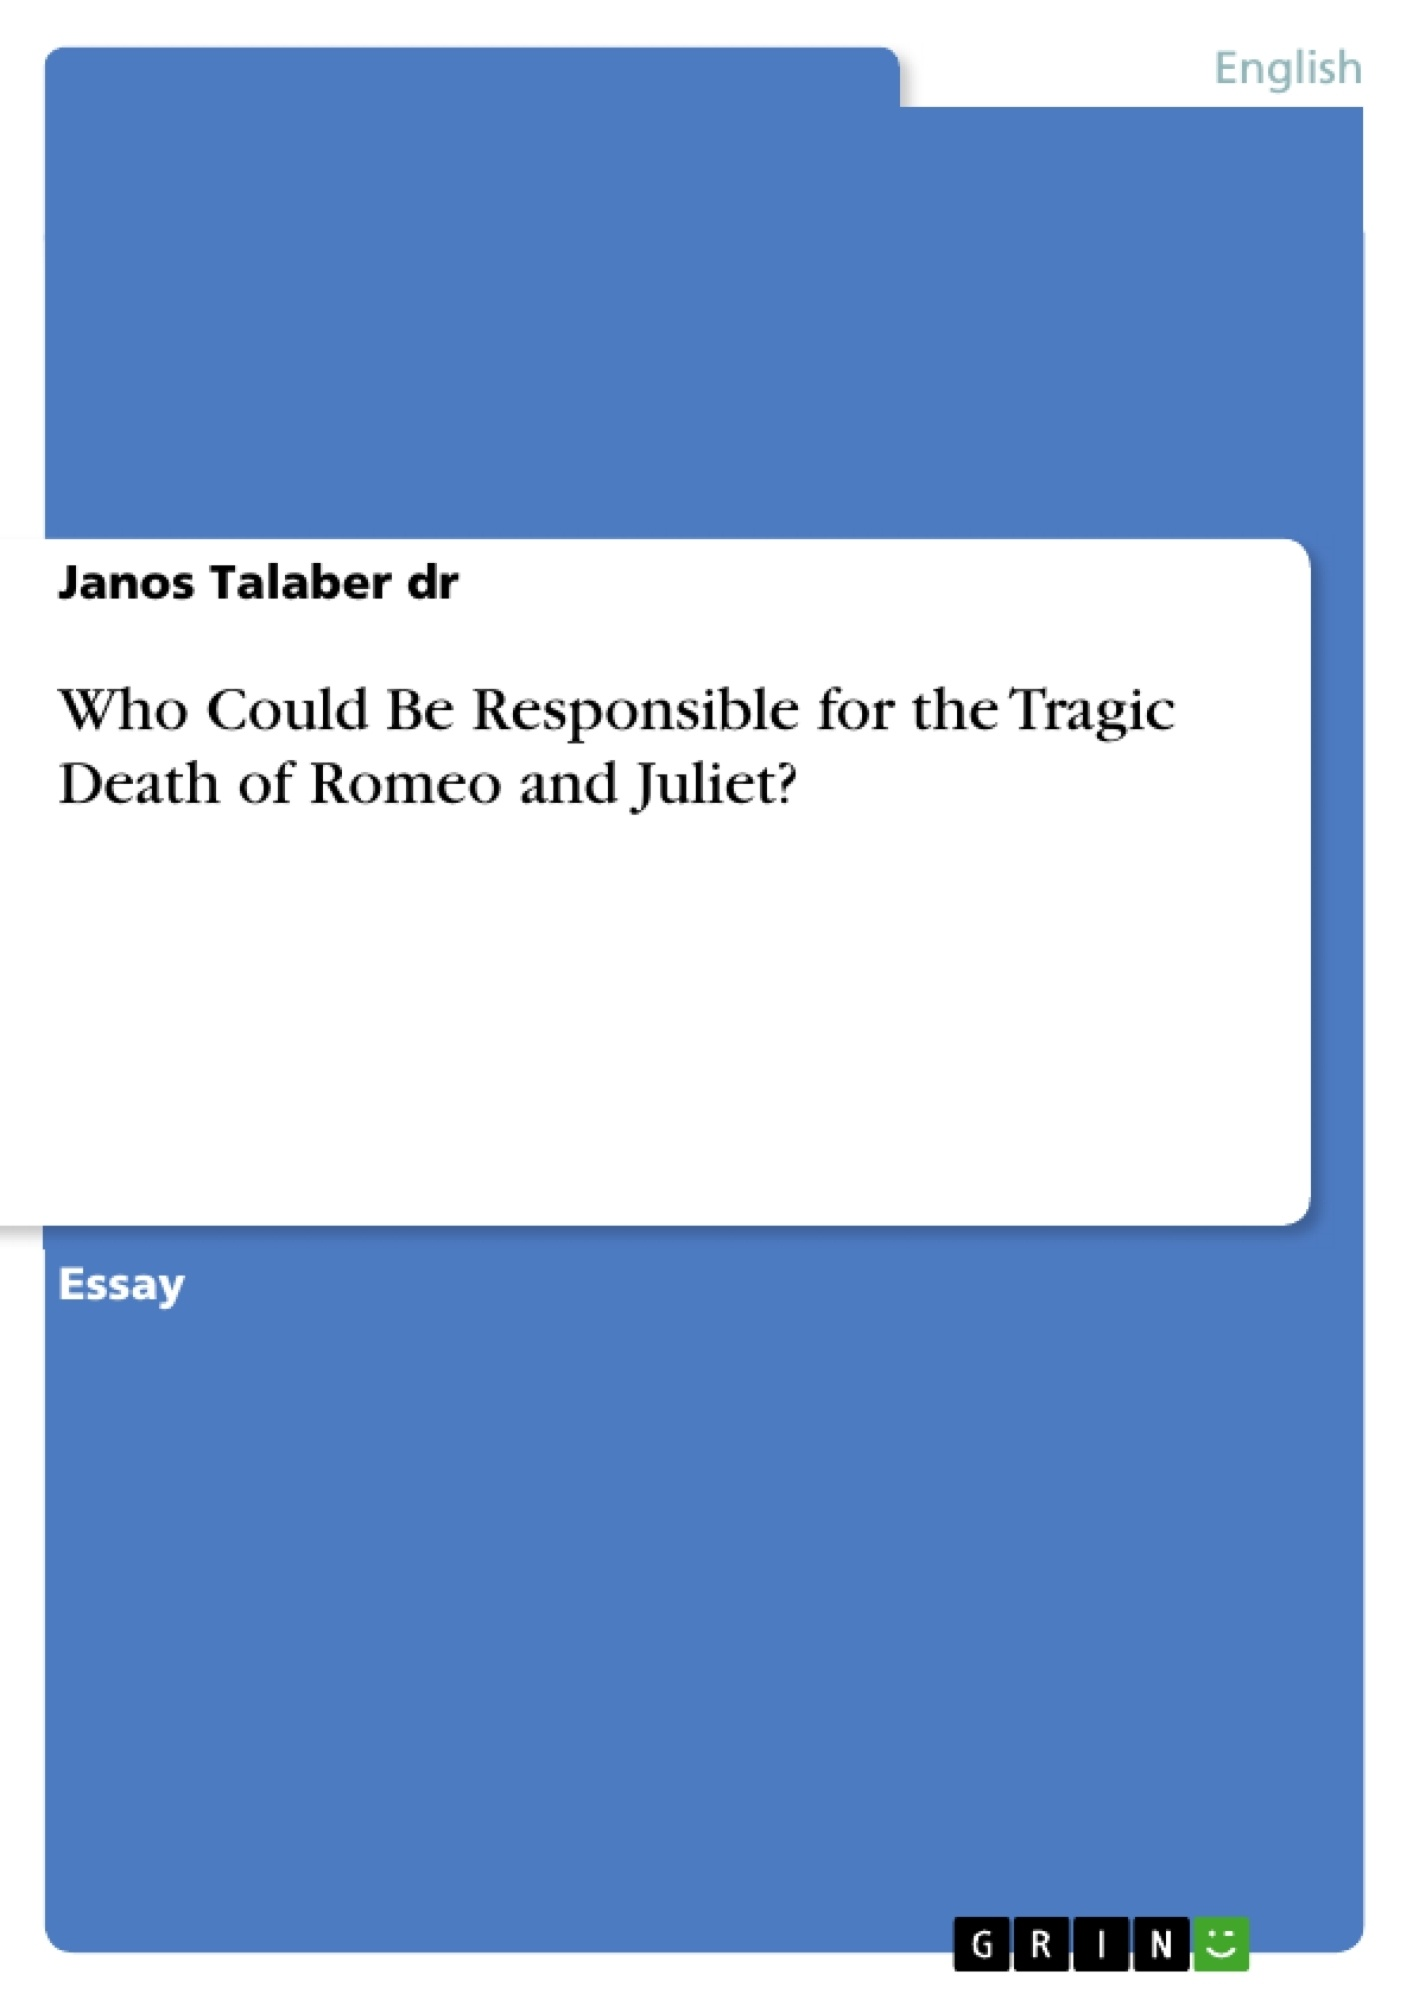 friar lawrence blame deaths essay Romeo and juliet: pupil essay: youth and age should friar lawrence and the nurse have been more careful about the way they encouraged romeo and juliet's love to what extent does shakespeare present them as being to blame 9 june 2009 youth and age should friar lawrence and the nurse have been more.